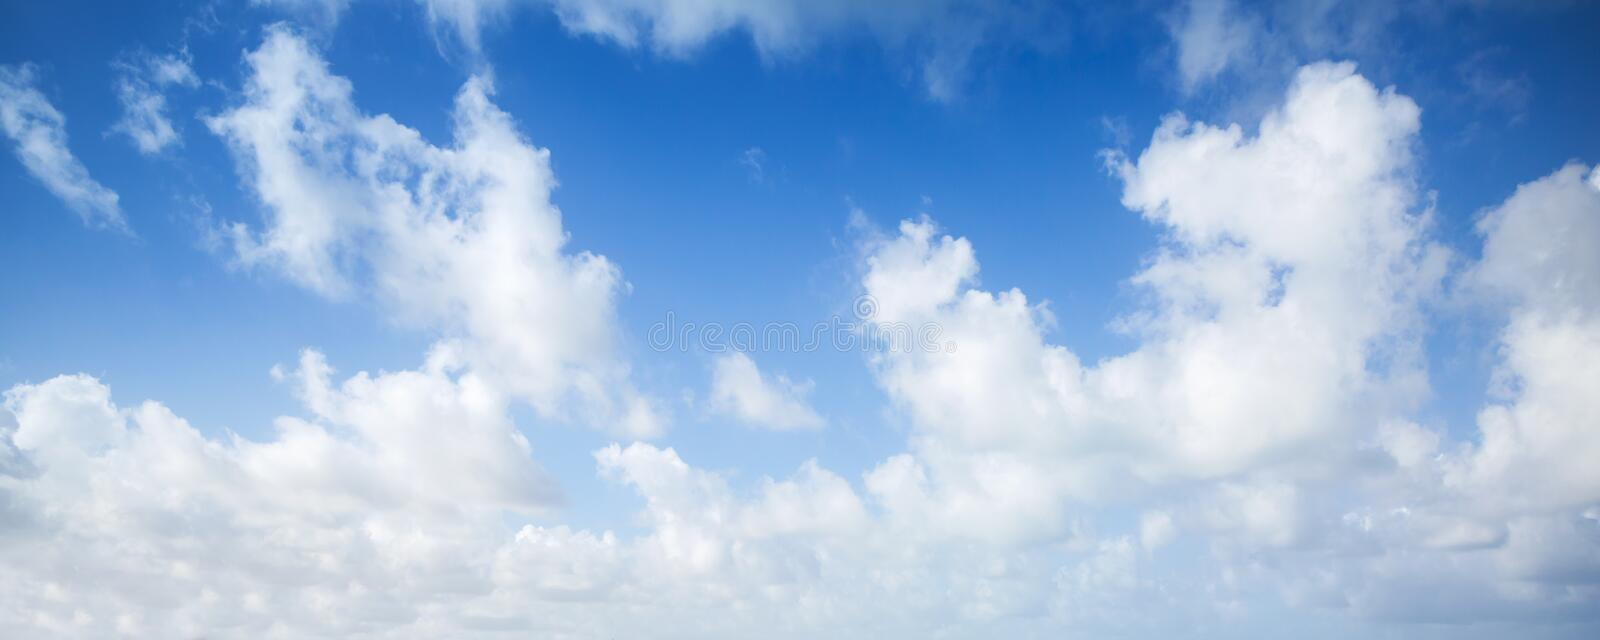 Blue sky and white clouds, panoramic background royalty free stock photos